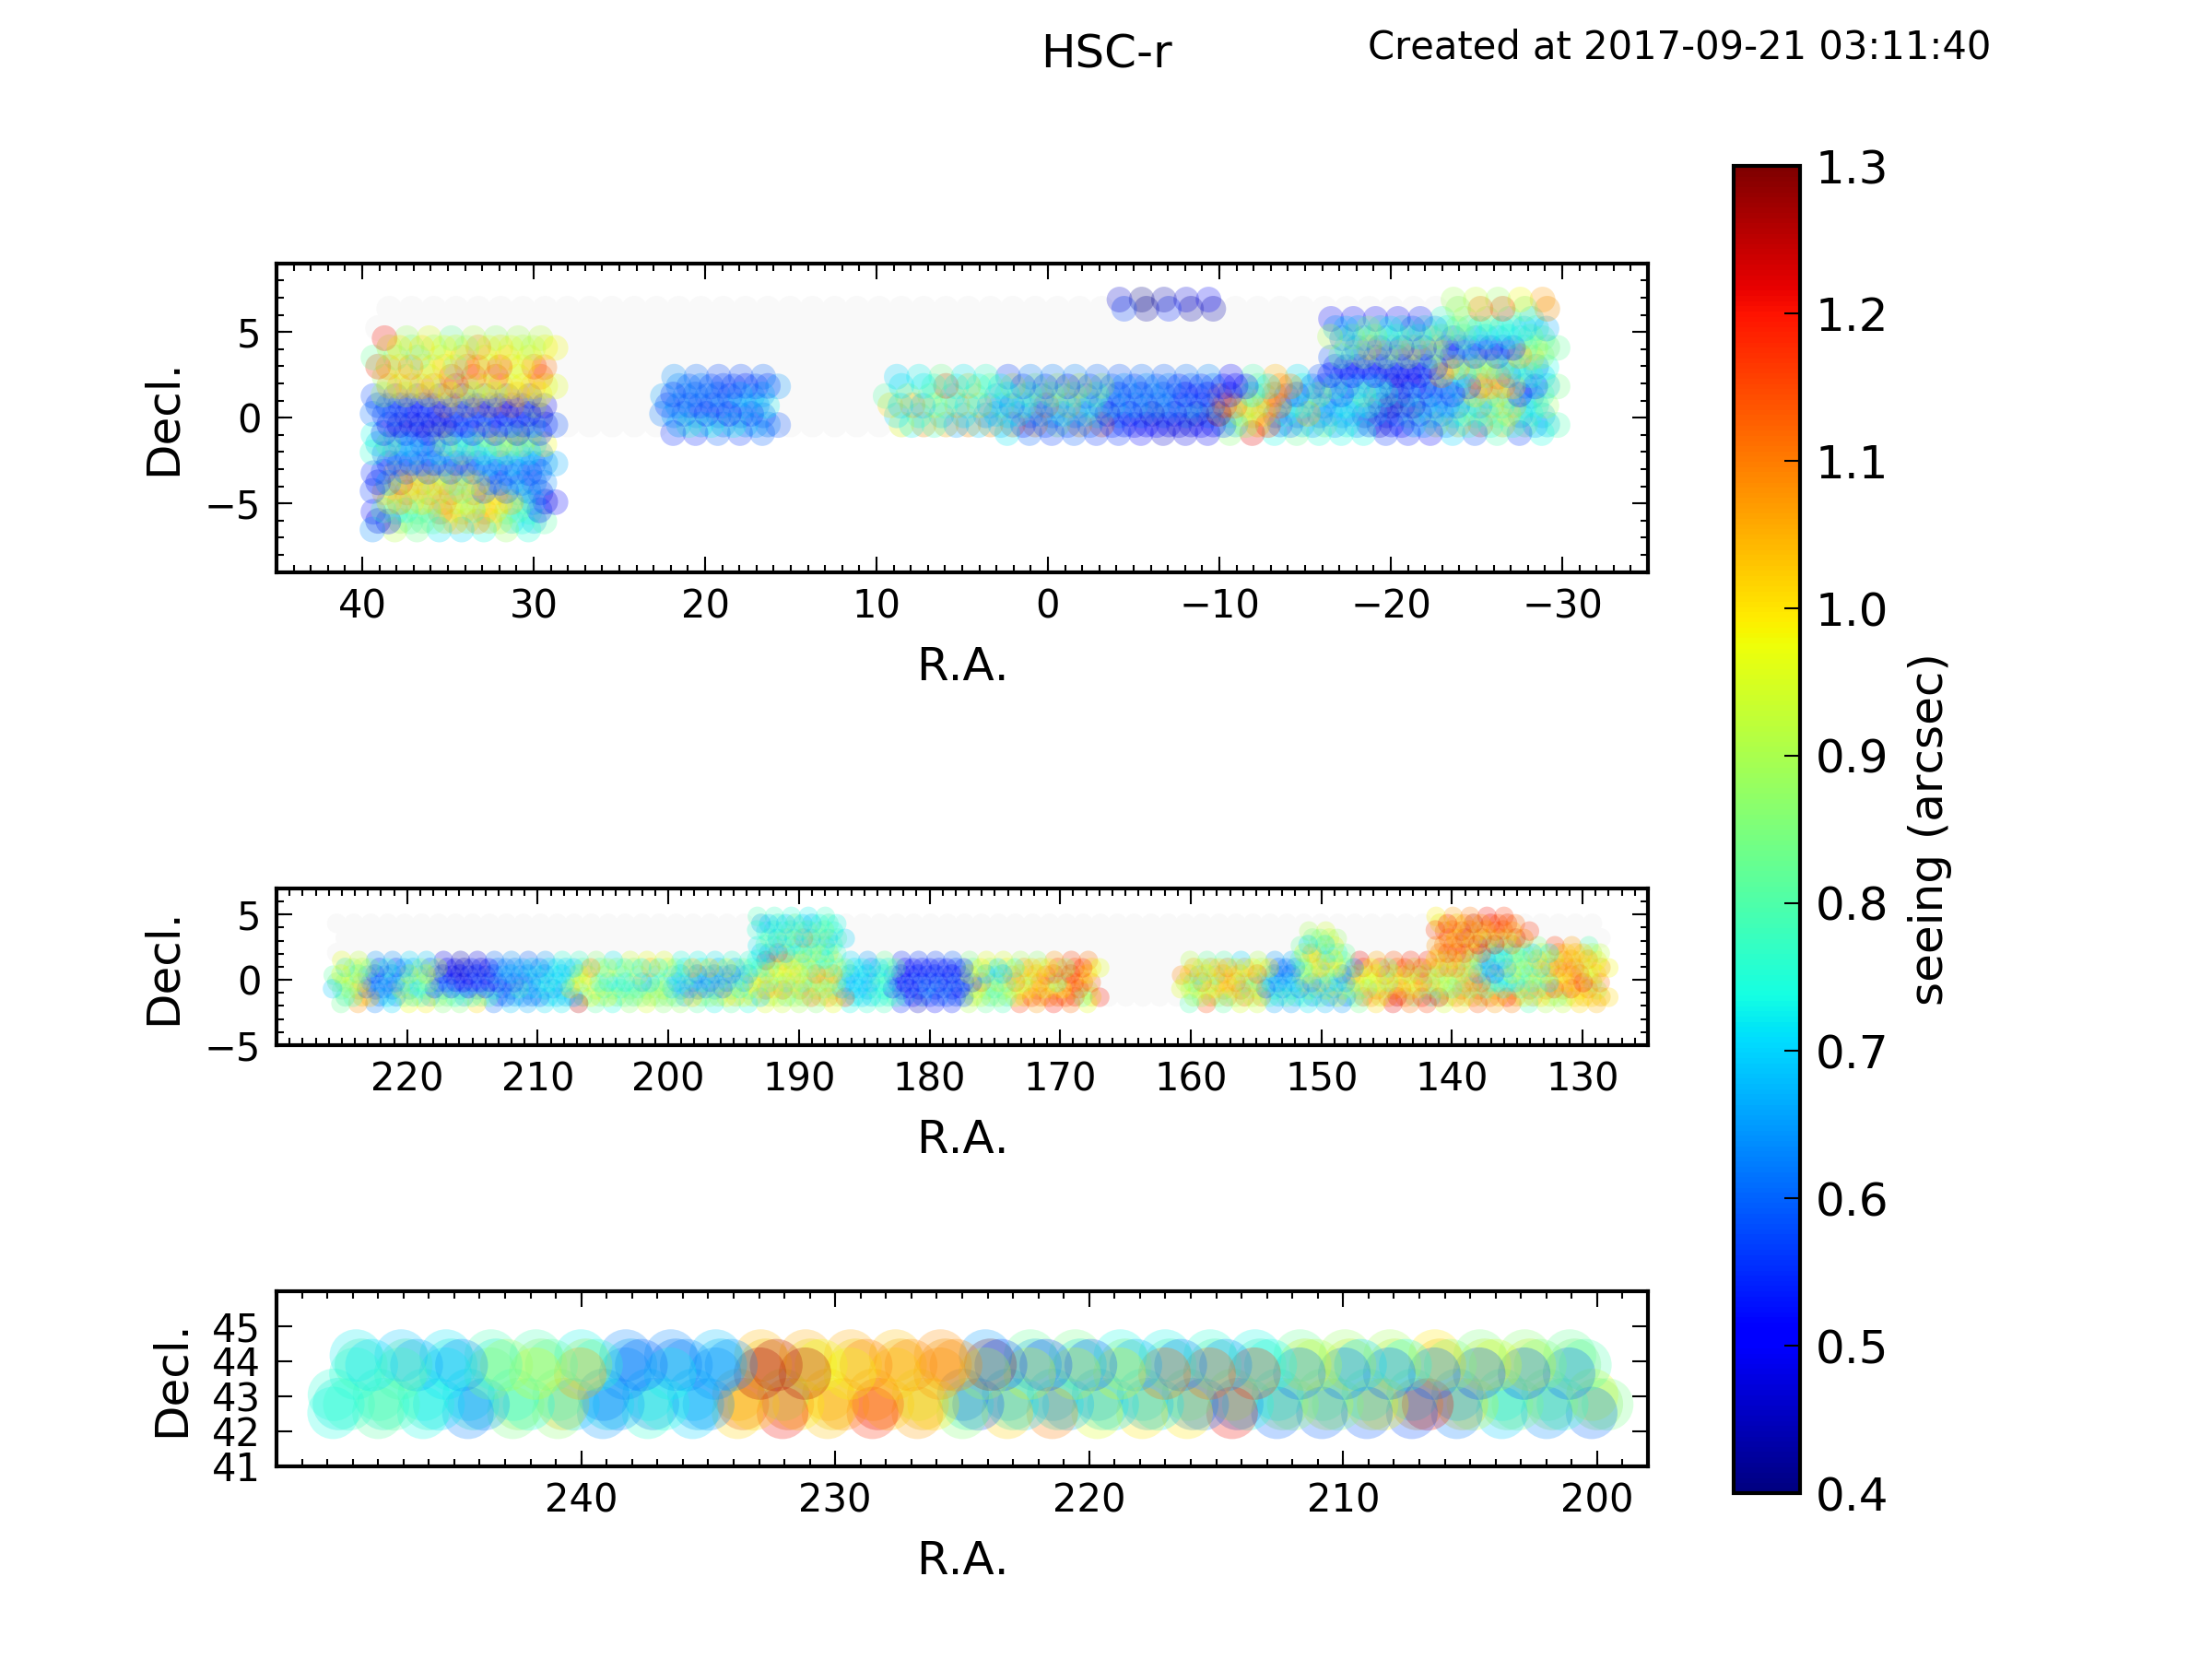 r-band coverage color-coded by seeing